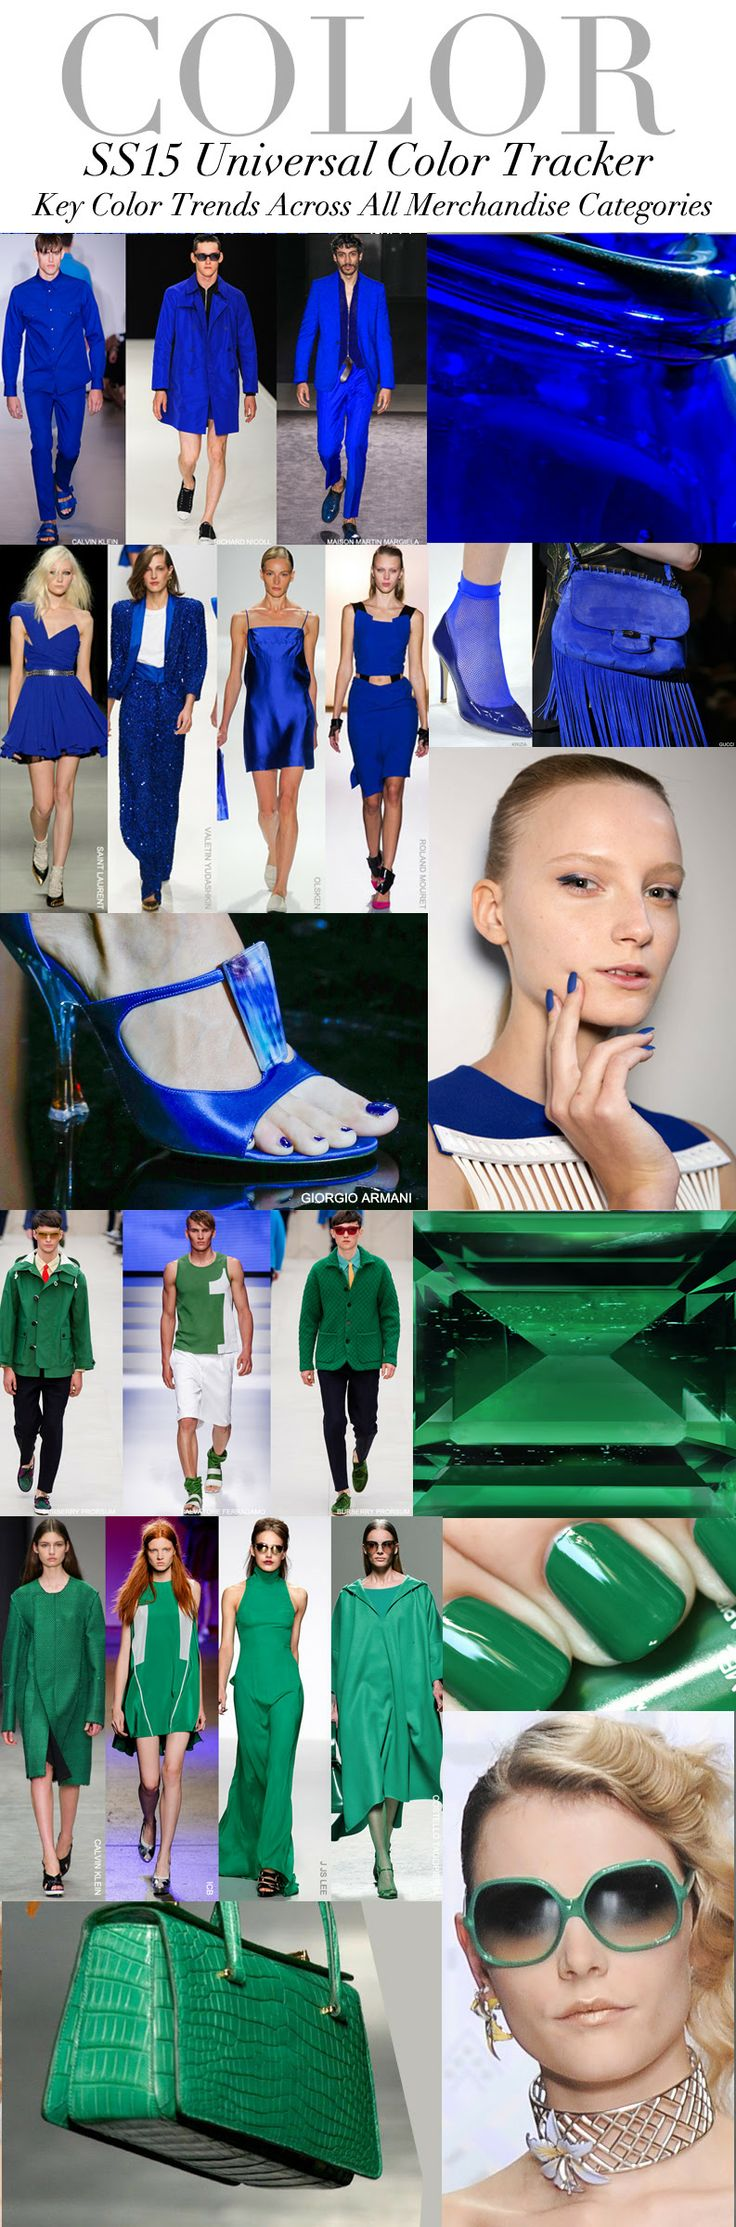 Trend Council - COLOR, SS15 Universal Color Tracker